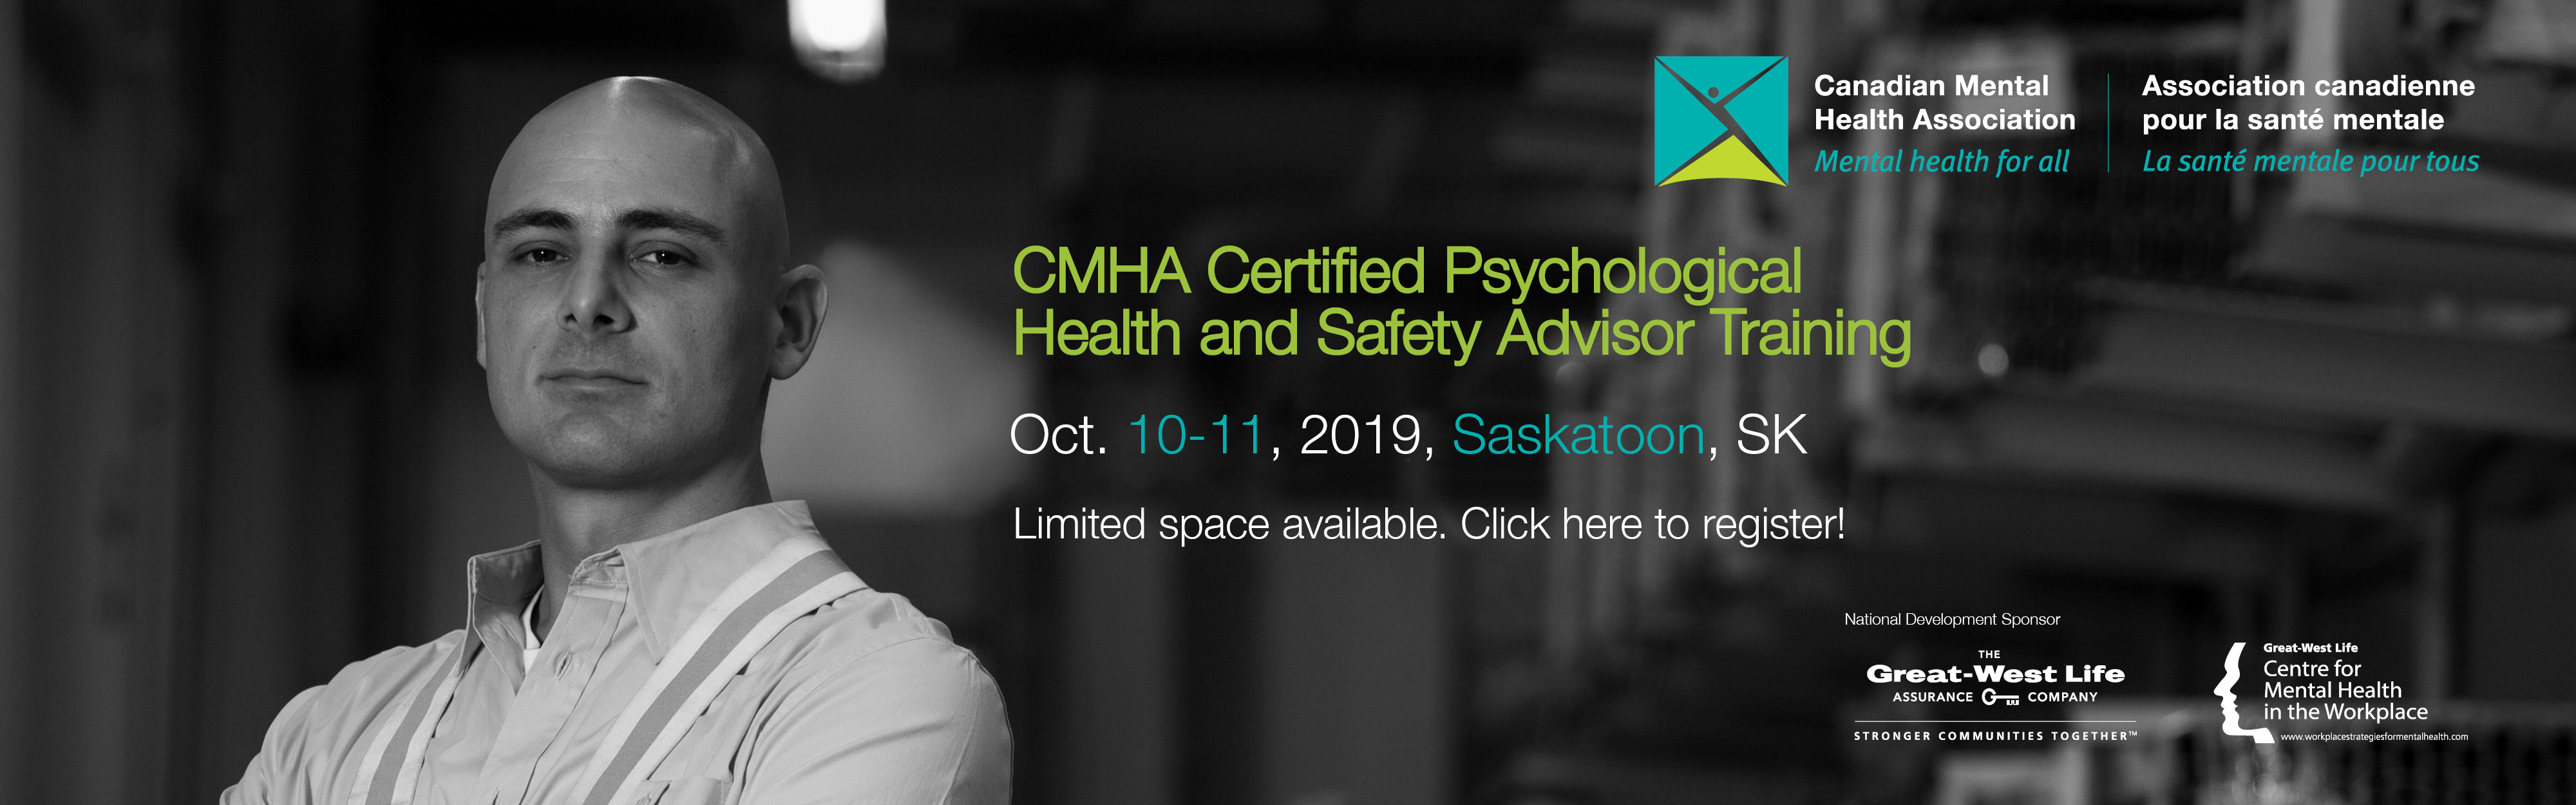 CMHA Certified Psychological Health and Safety Advisor Training